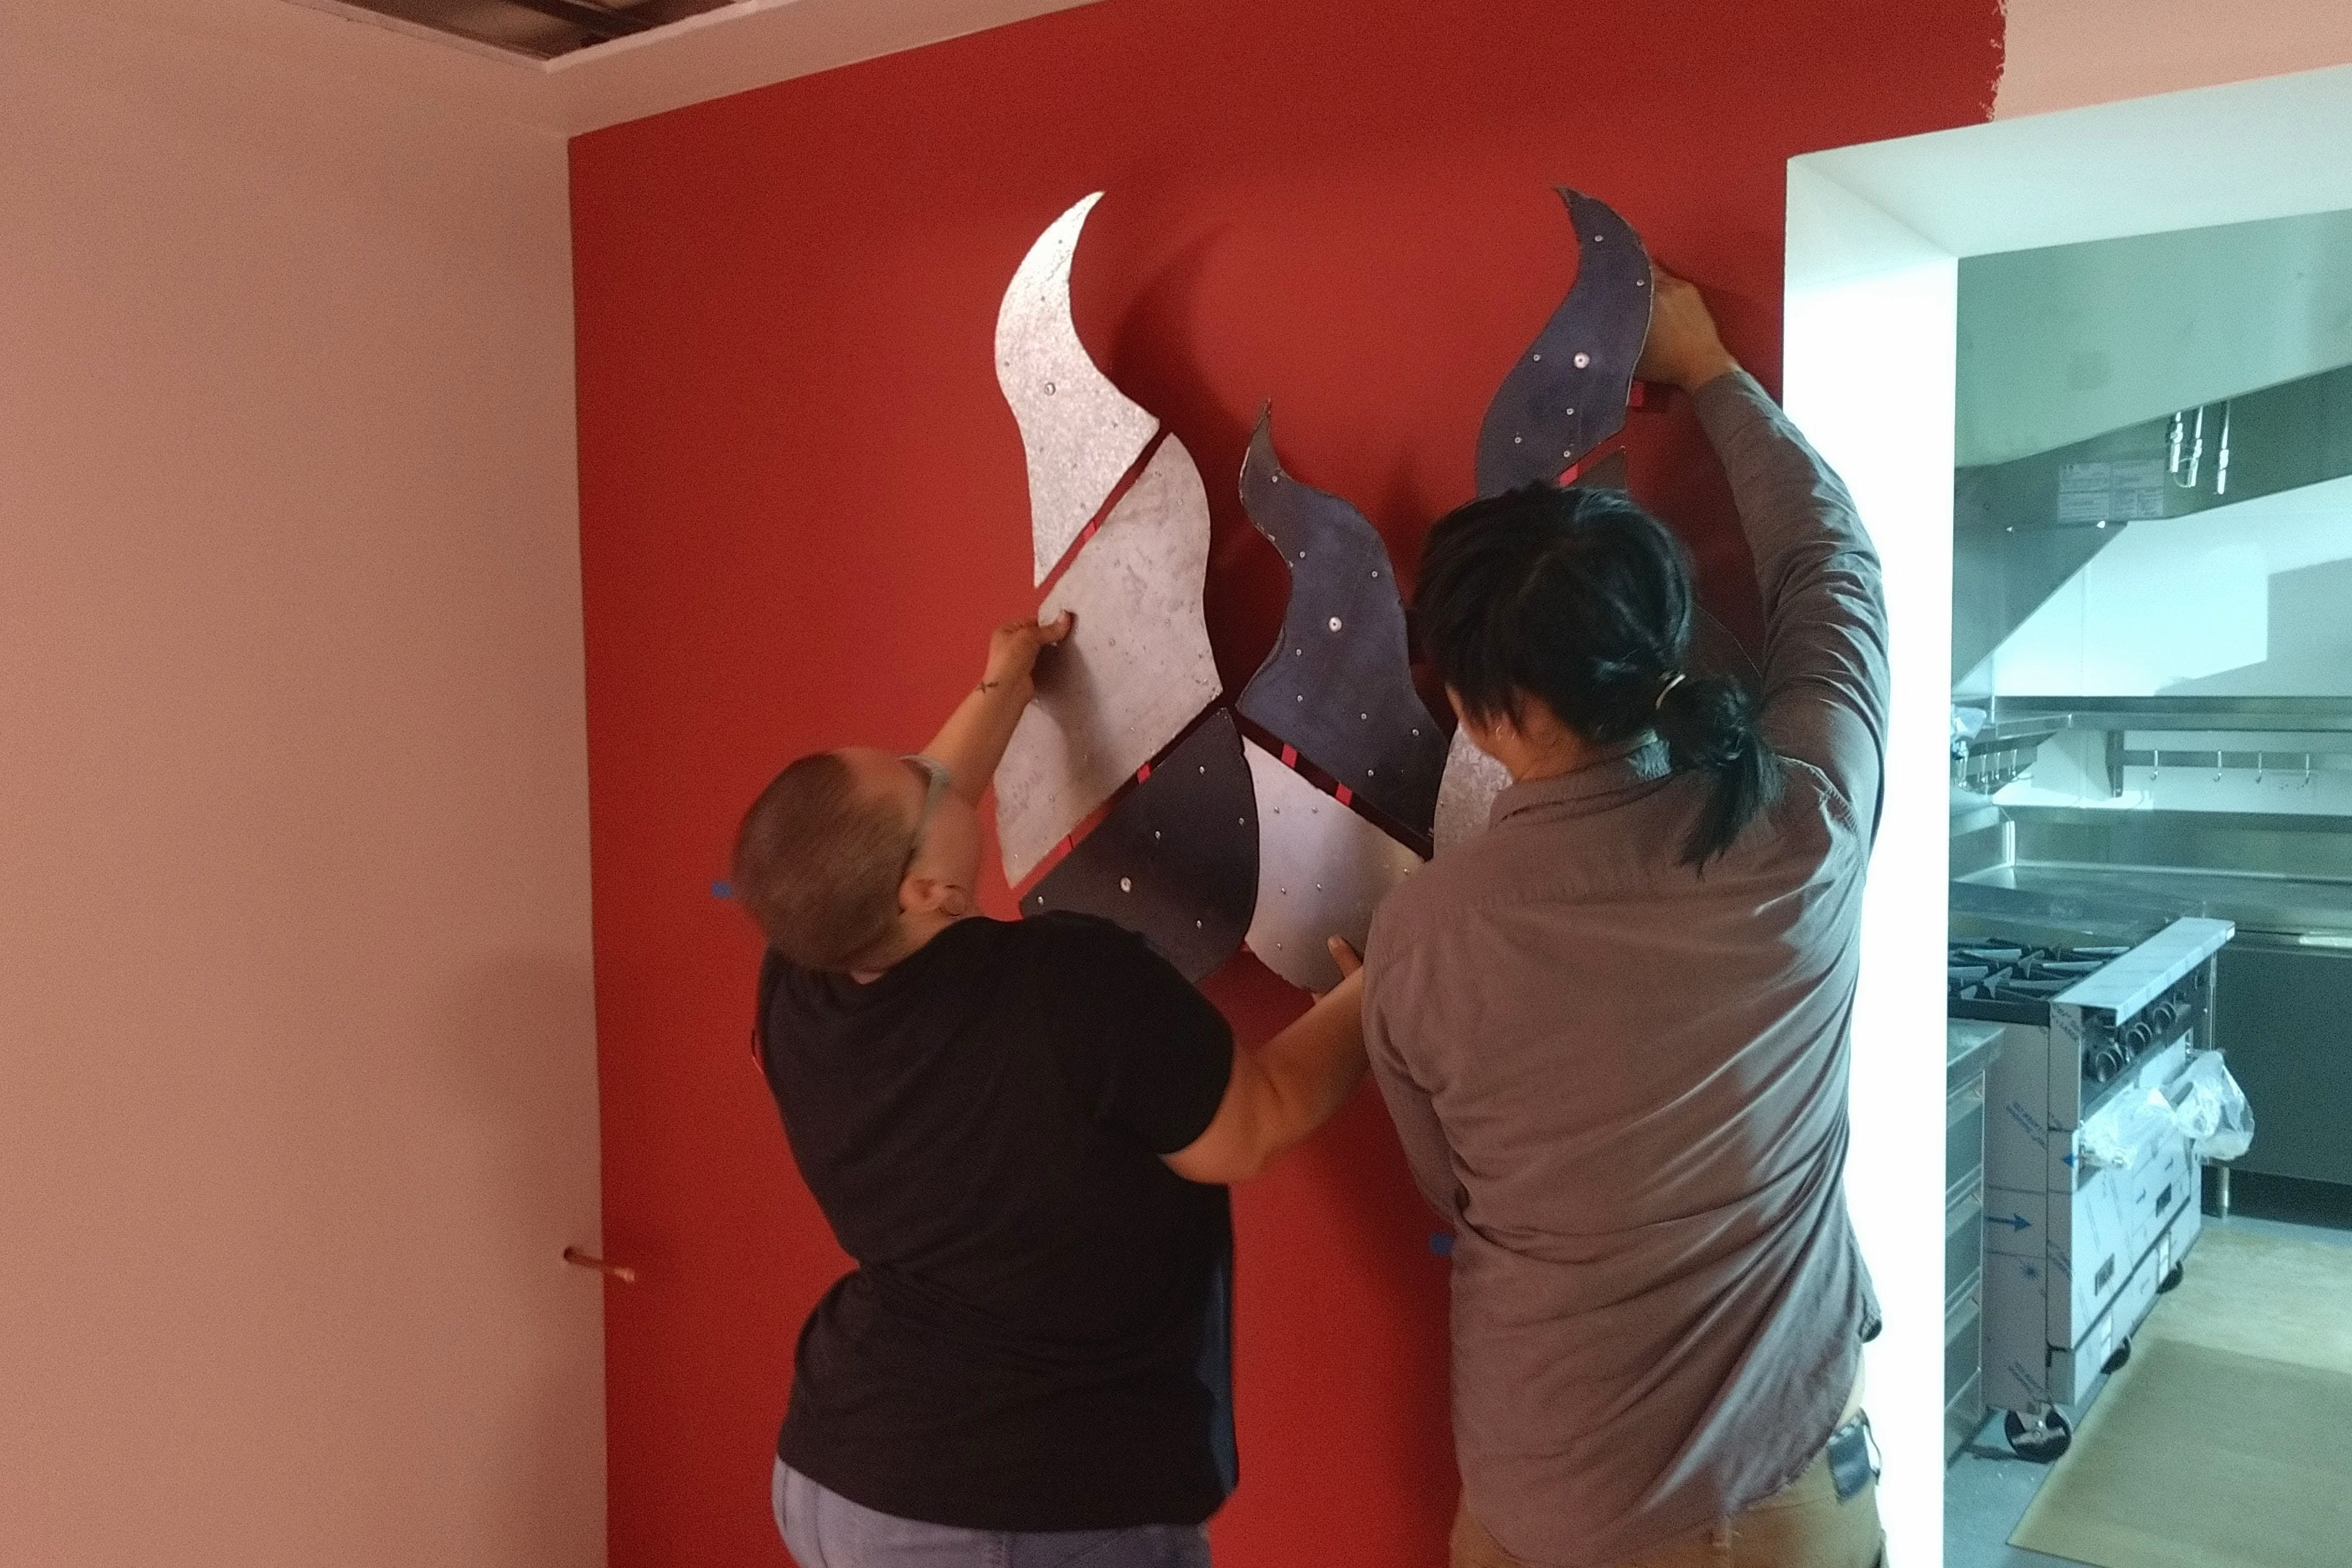 The student artist helps install the artwork at St. Matthew's